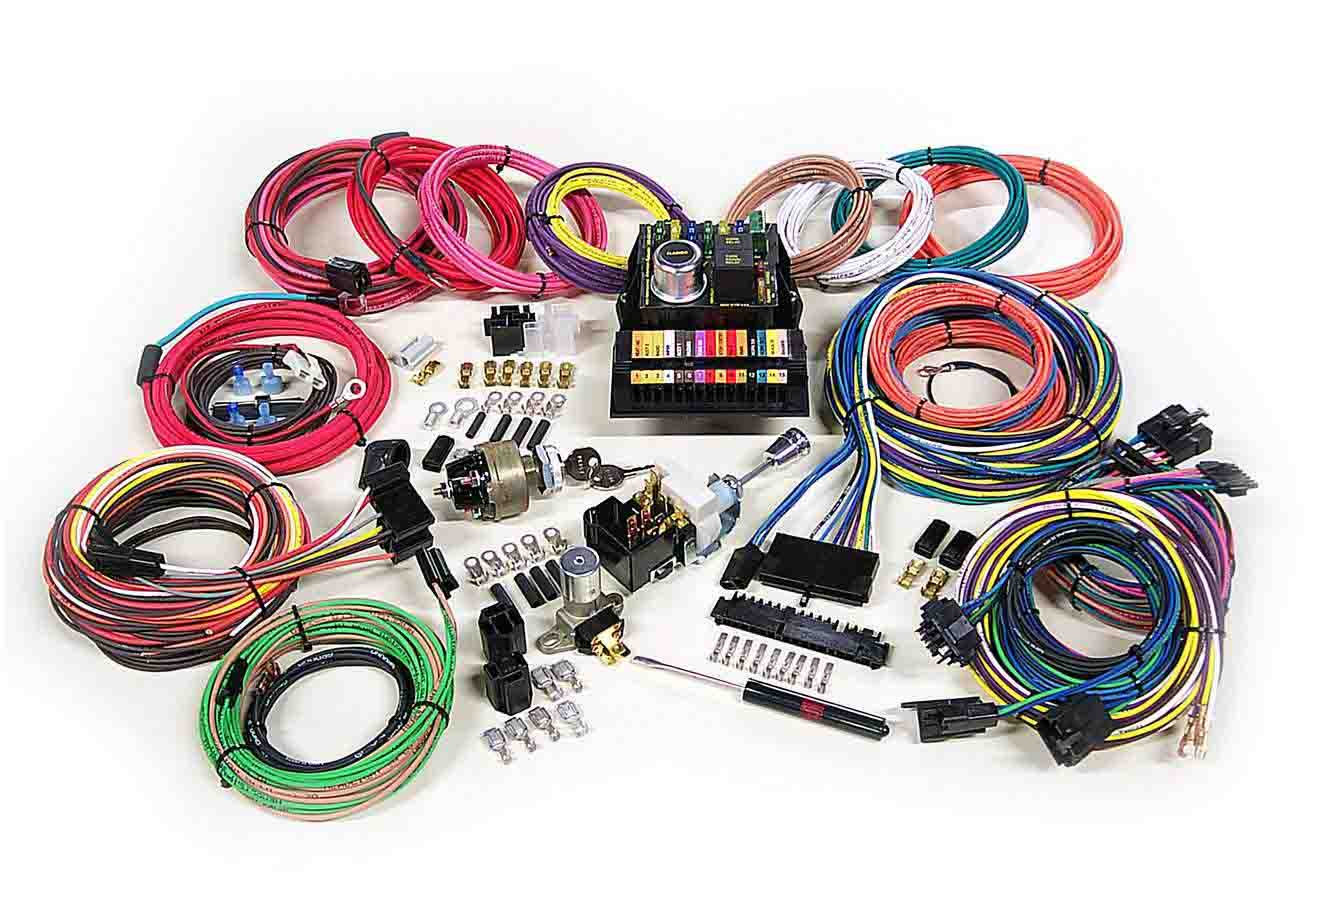 Auto Wire Harness Repair | Wiring Diagram Gm Wiring Harness Repair Kit on